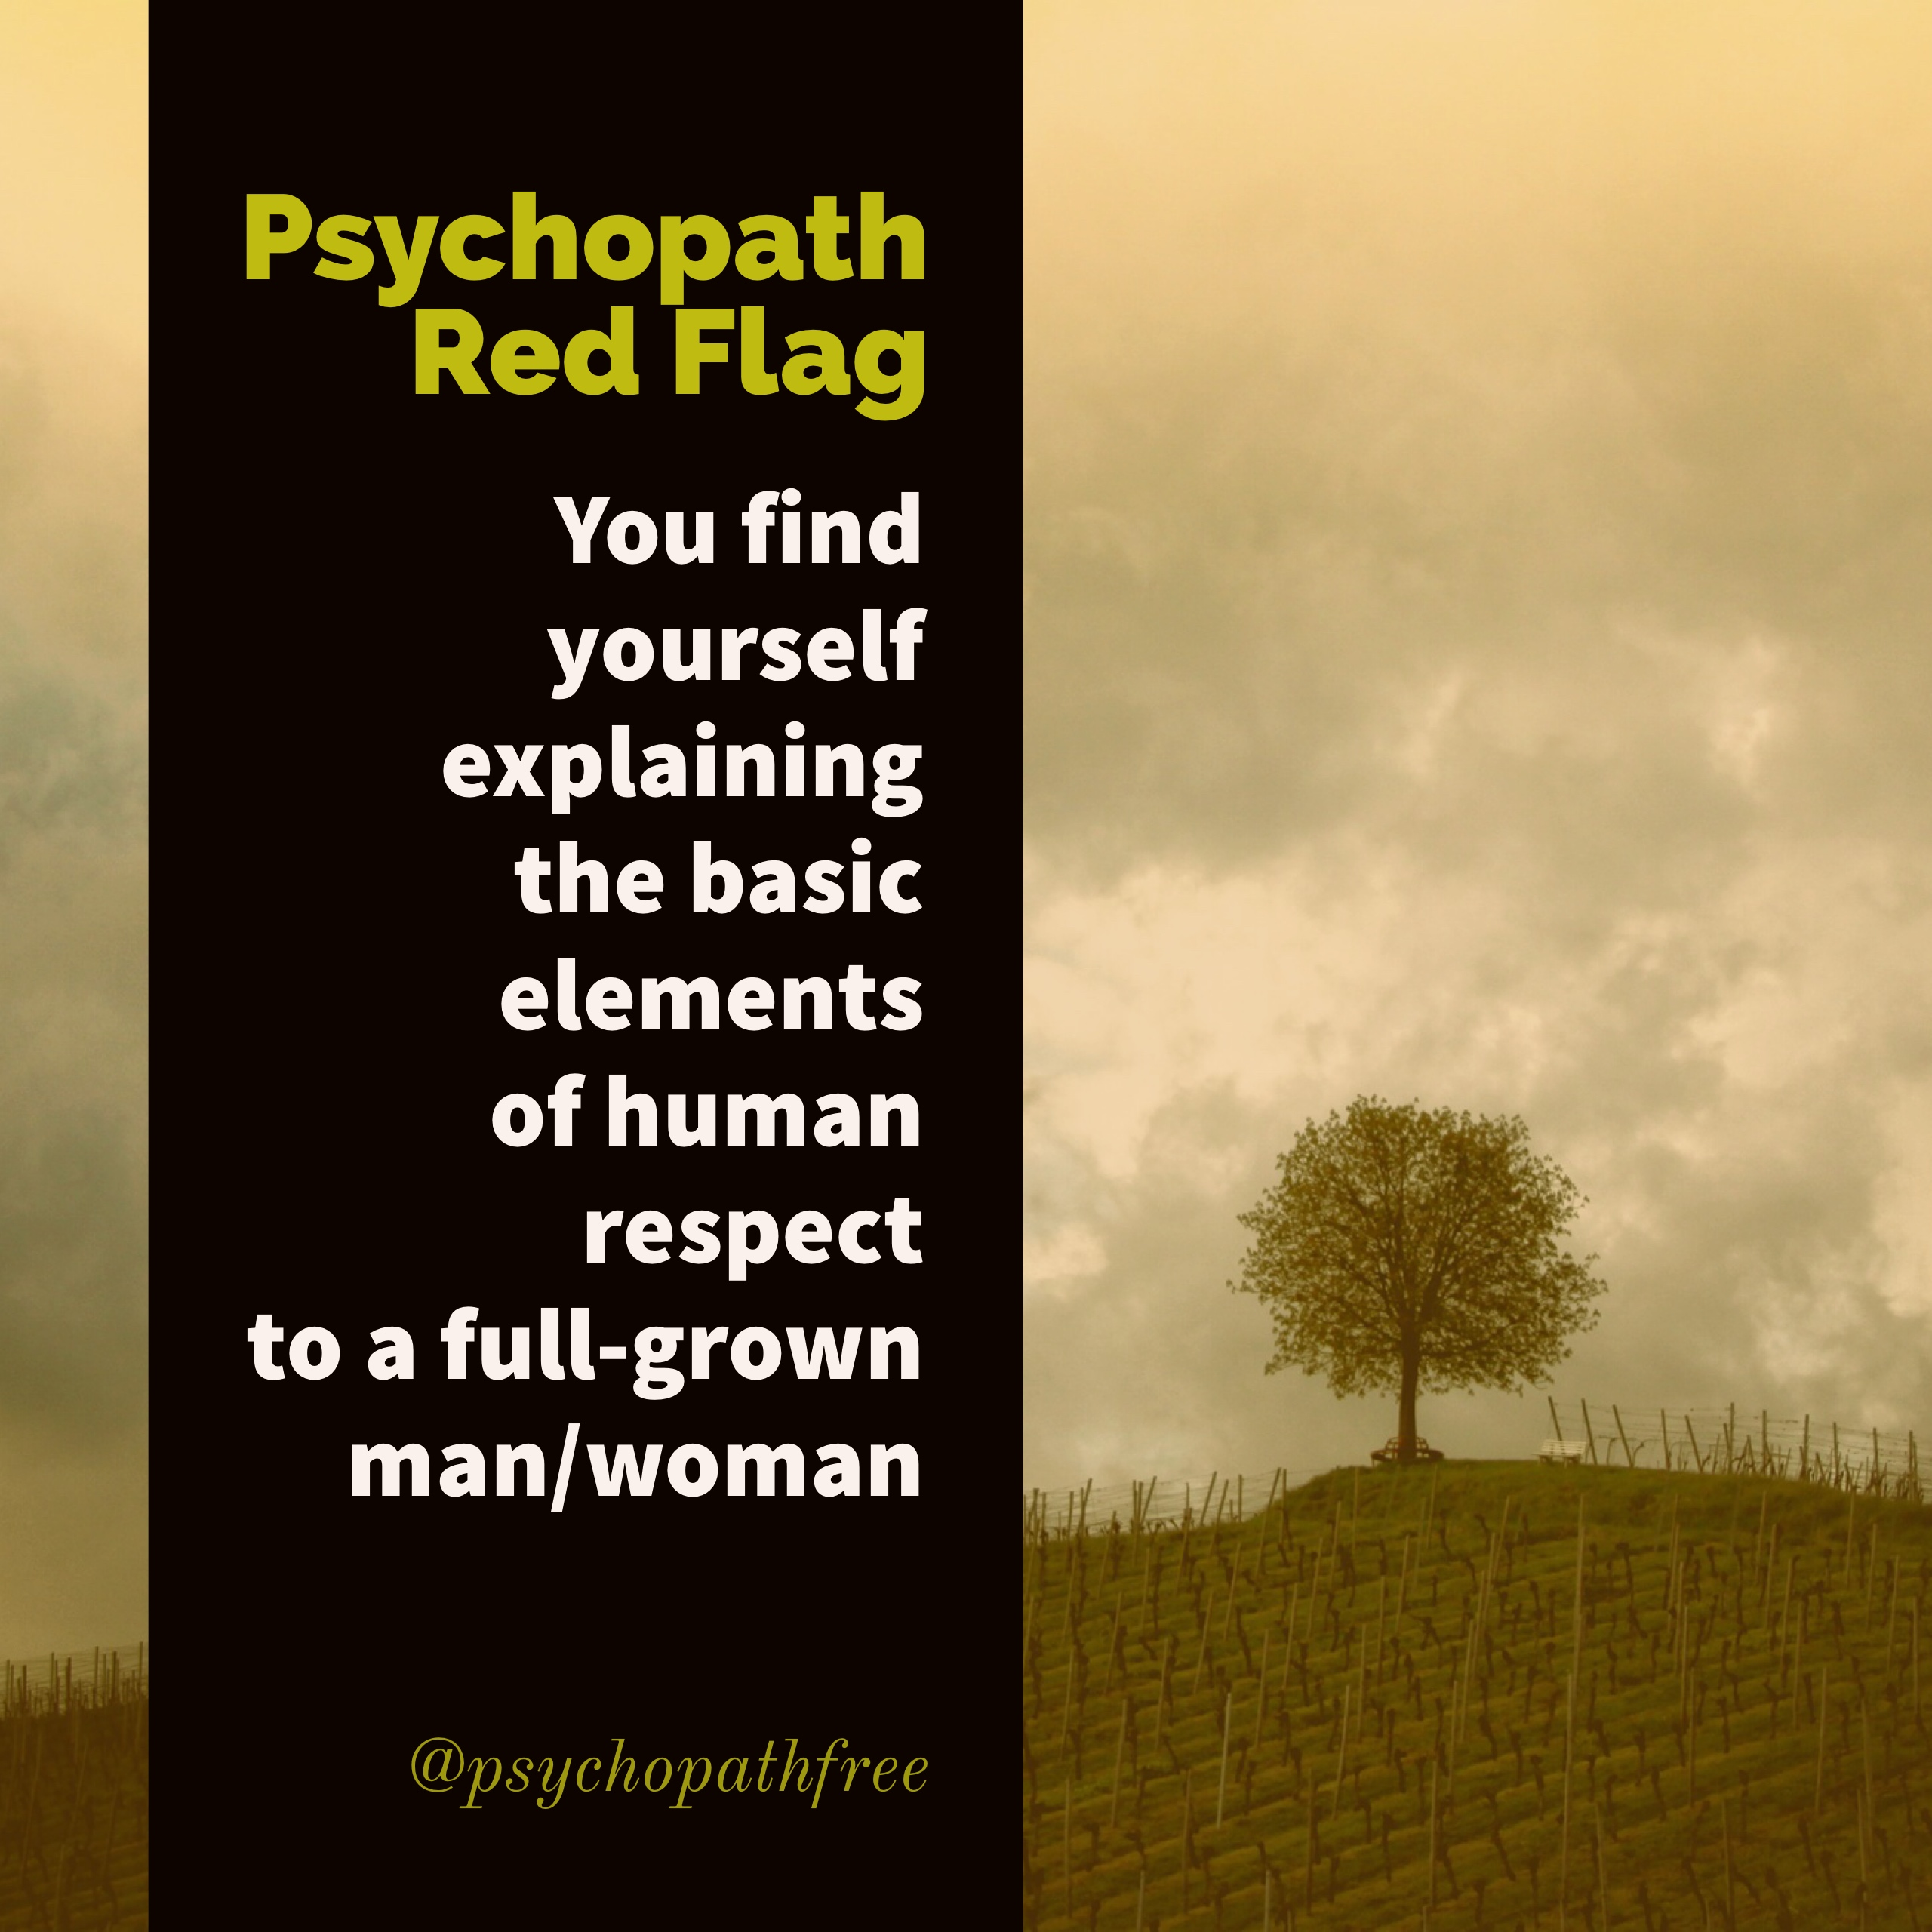 Dating red flags list psychopath